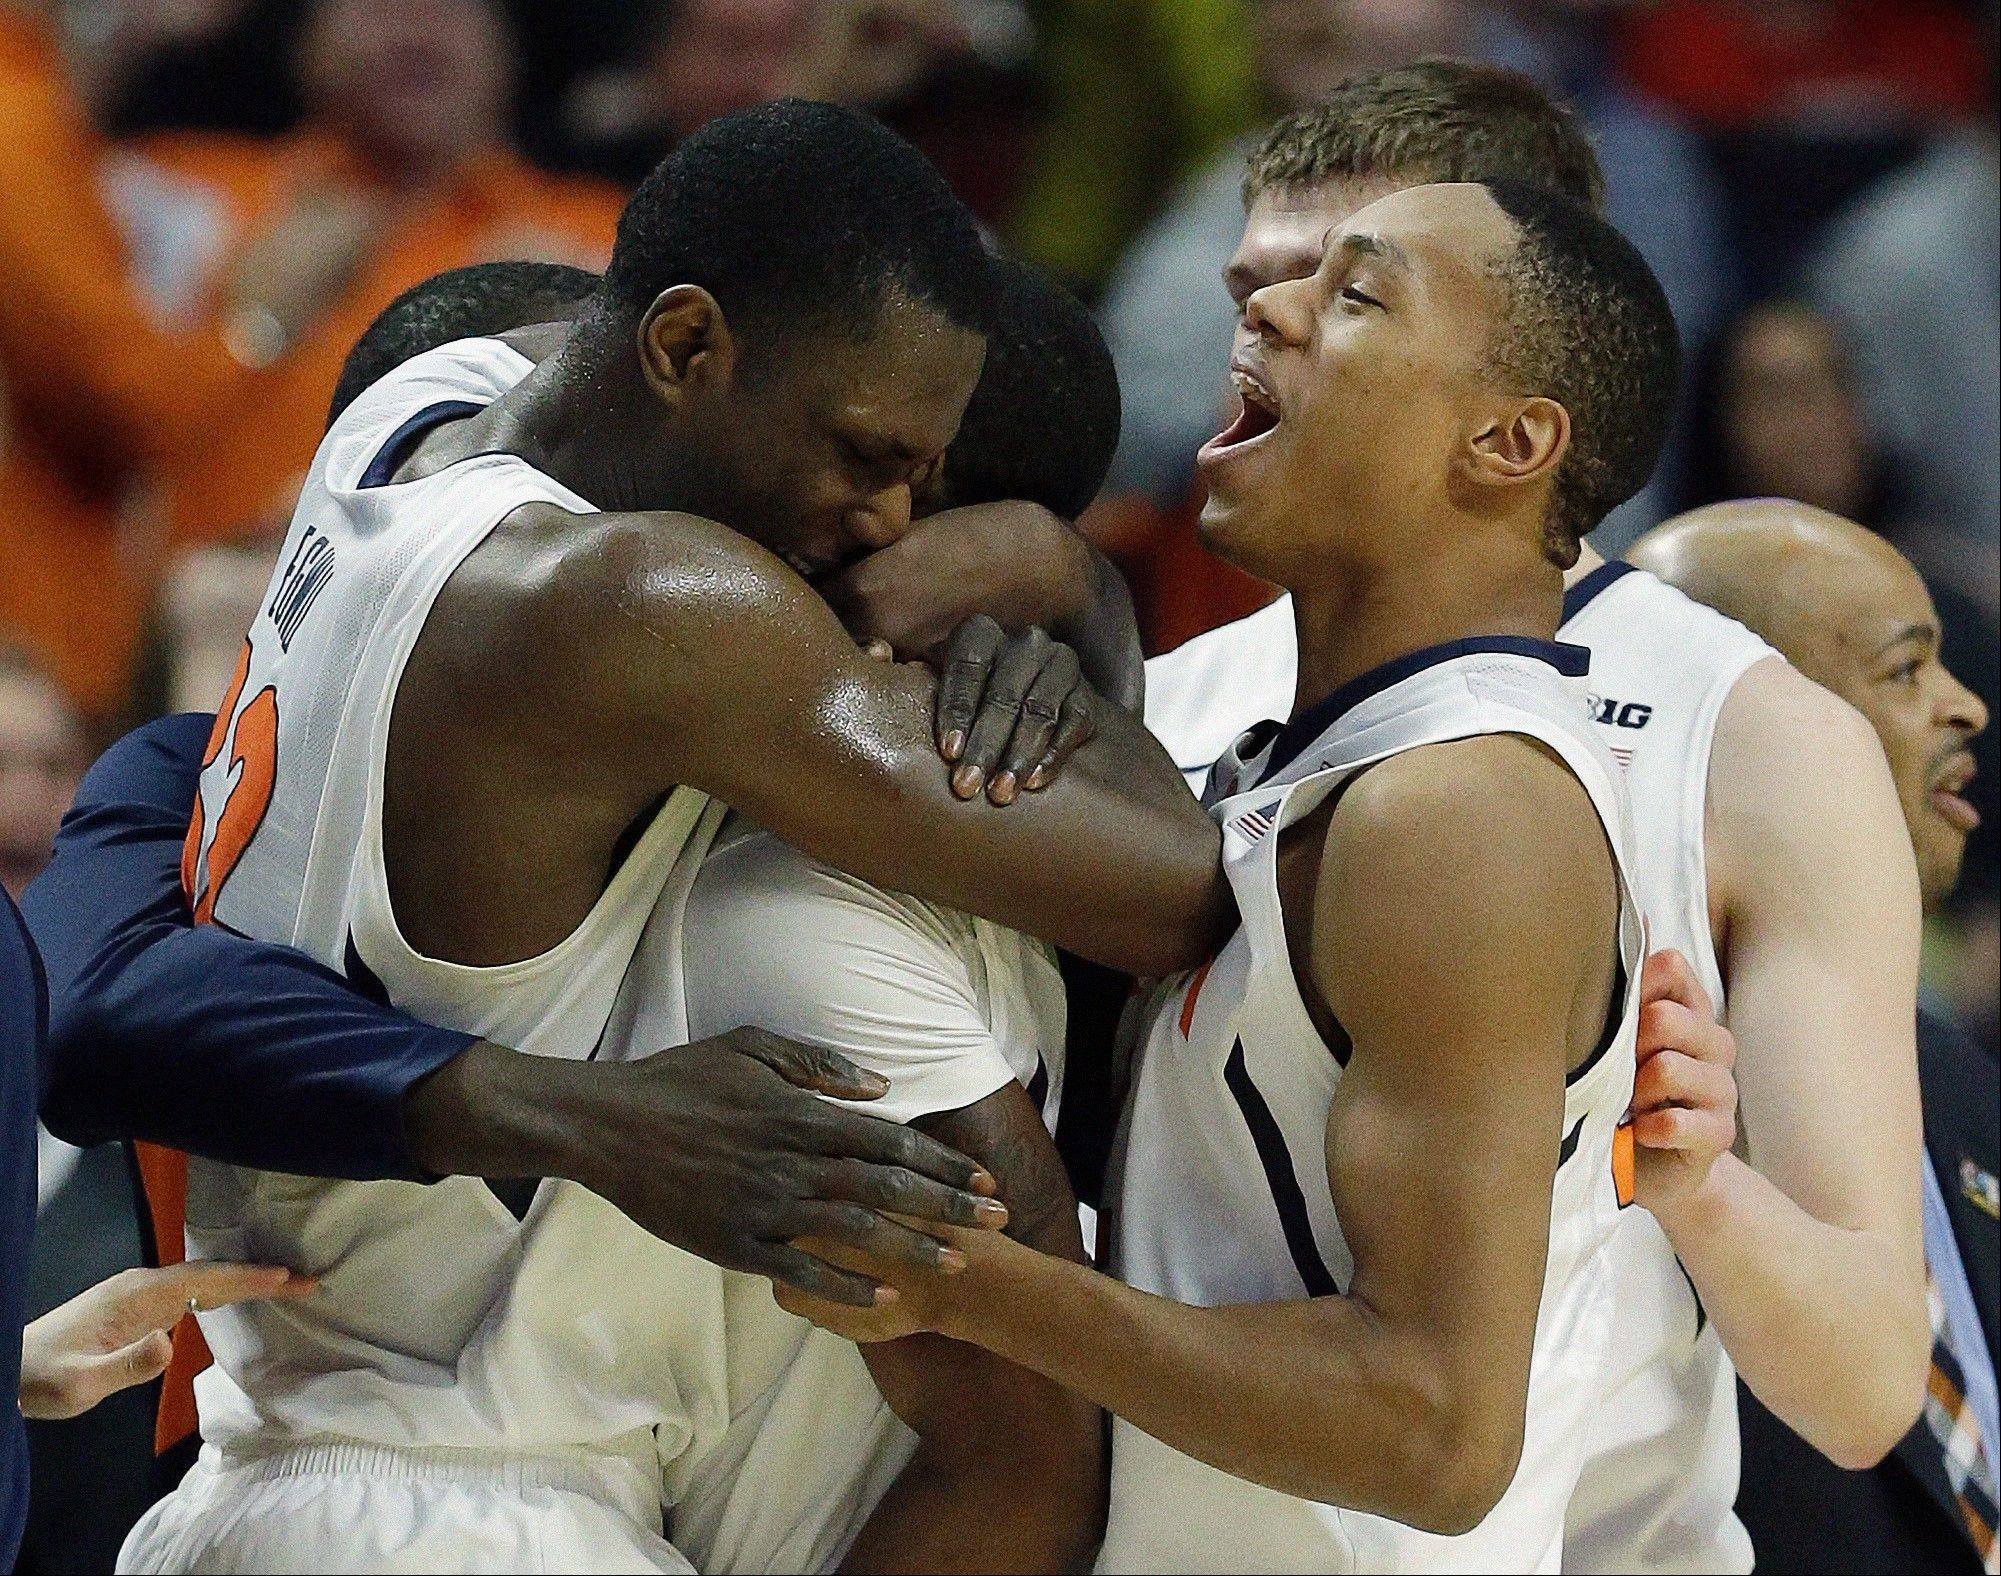 Illinois' Brandon Paul is swarmed by teammates after making the game-winning shot Thursday against Minnesota at the Big Ten tournament in Chicago.